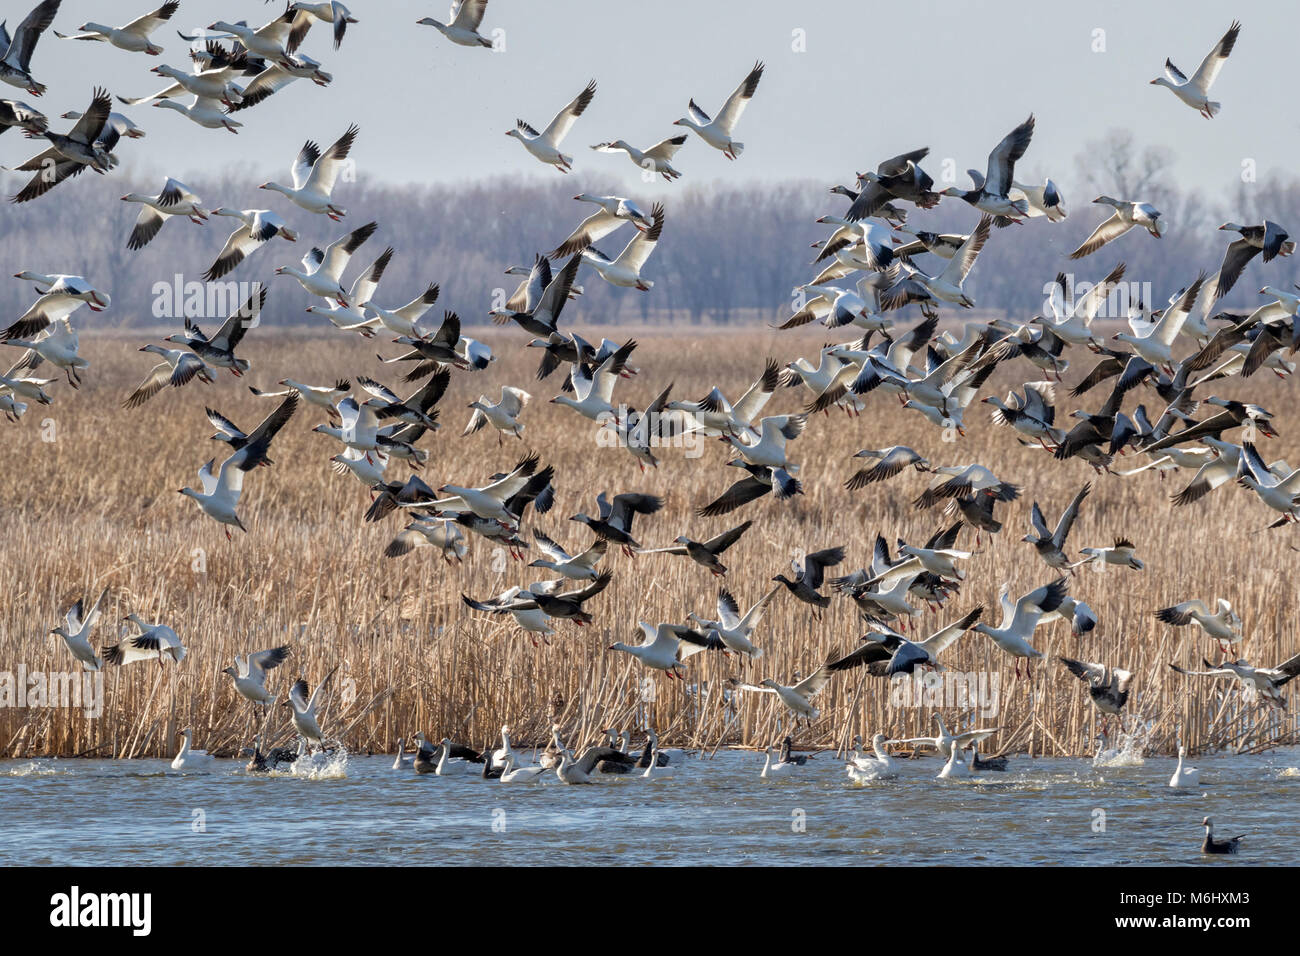 Spring migration of snow geese (Chen caerulescens), Loess Bluffs National Wildlife Refuge, Missouri, USA - Stock Image